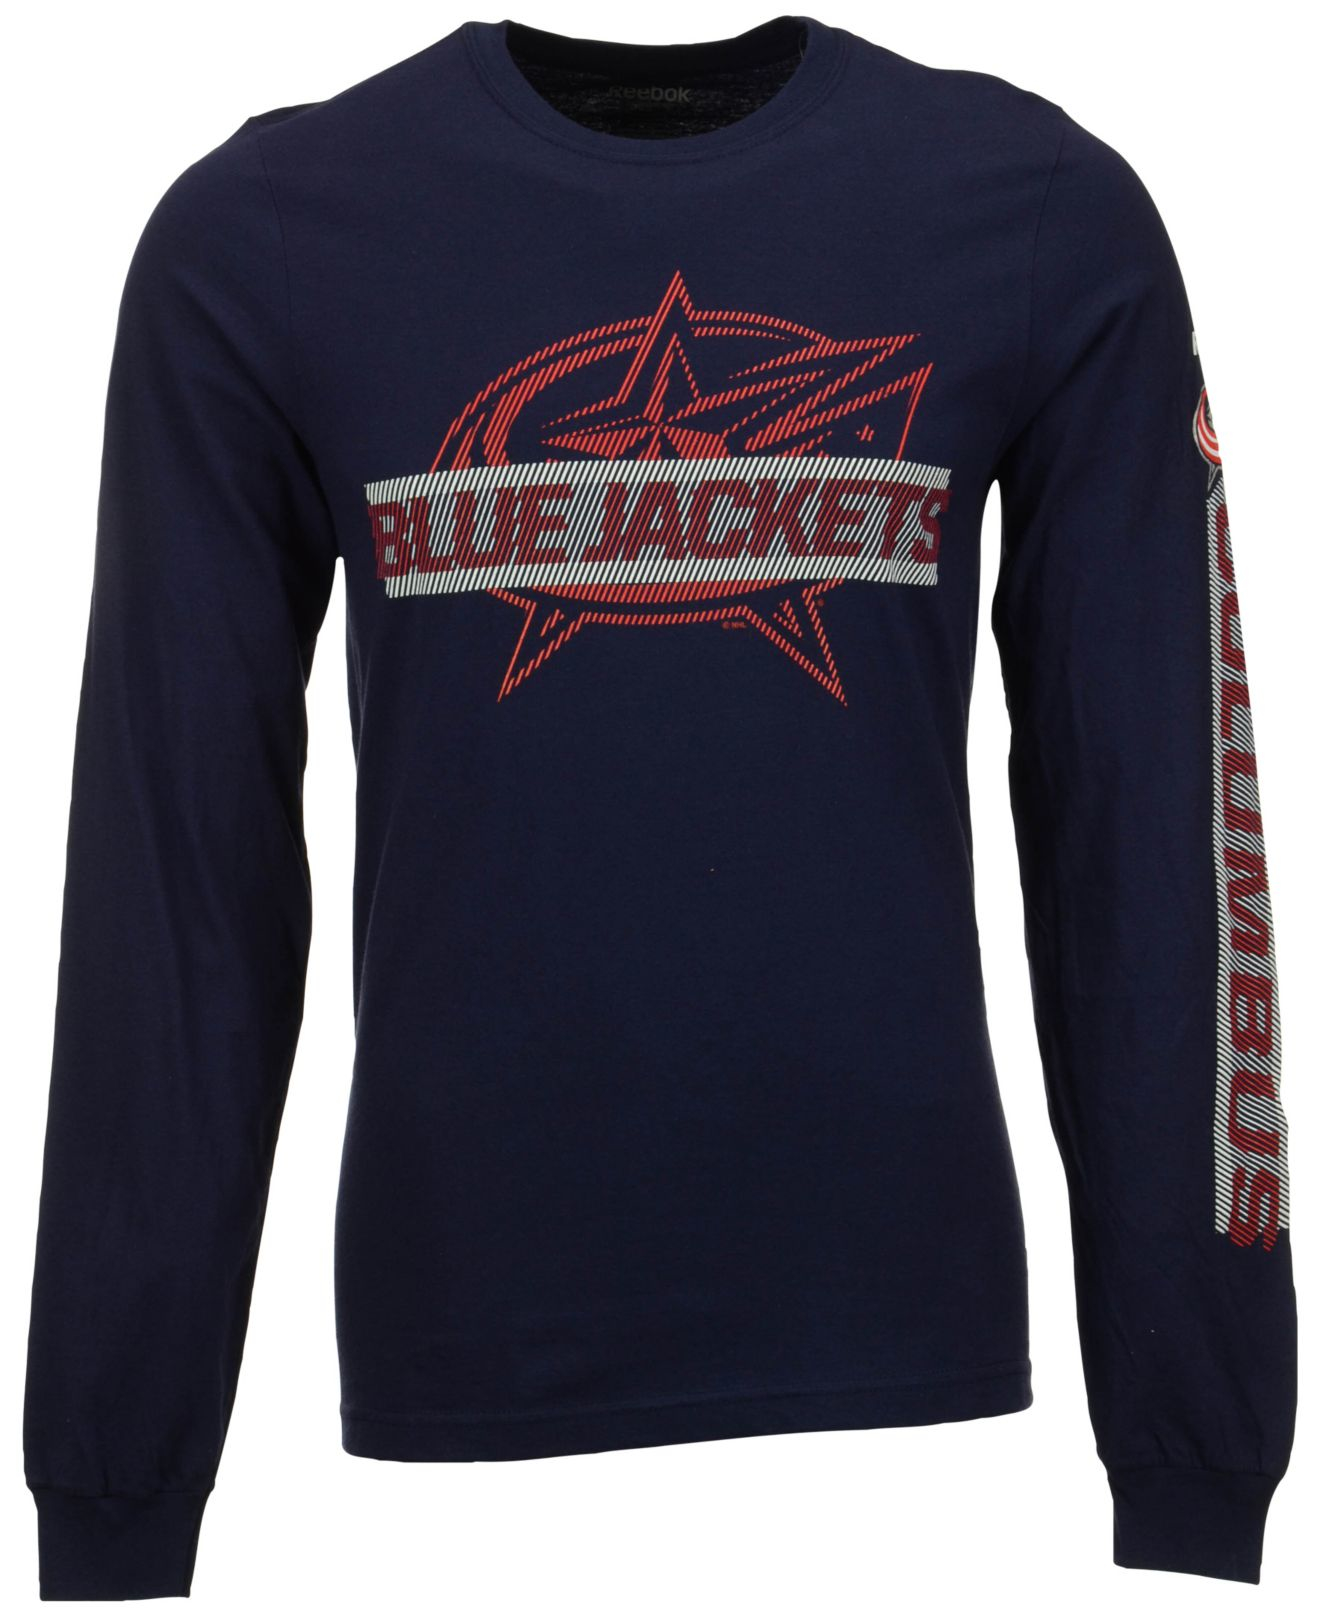 Reebok Men's Long-sleeve Columbus Blue Jackets Lineup T-shirt in ...